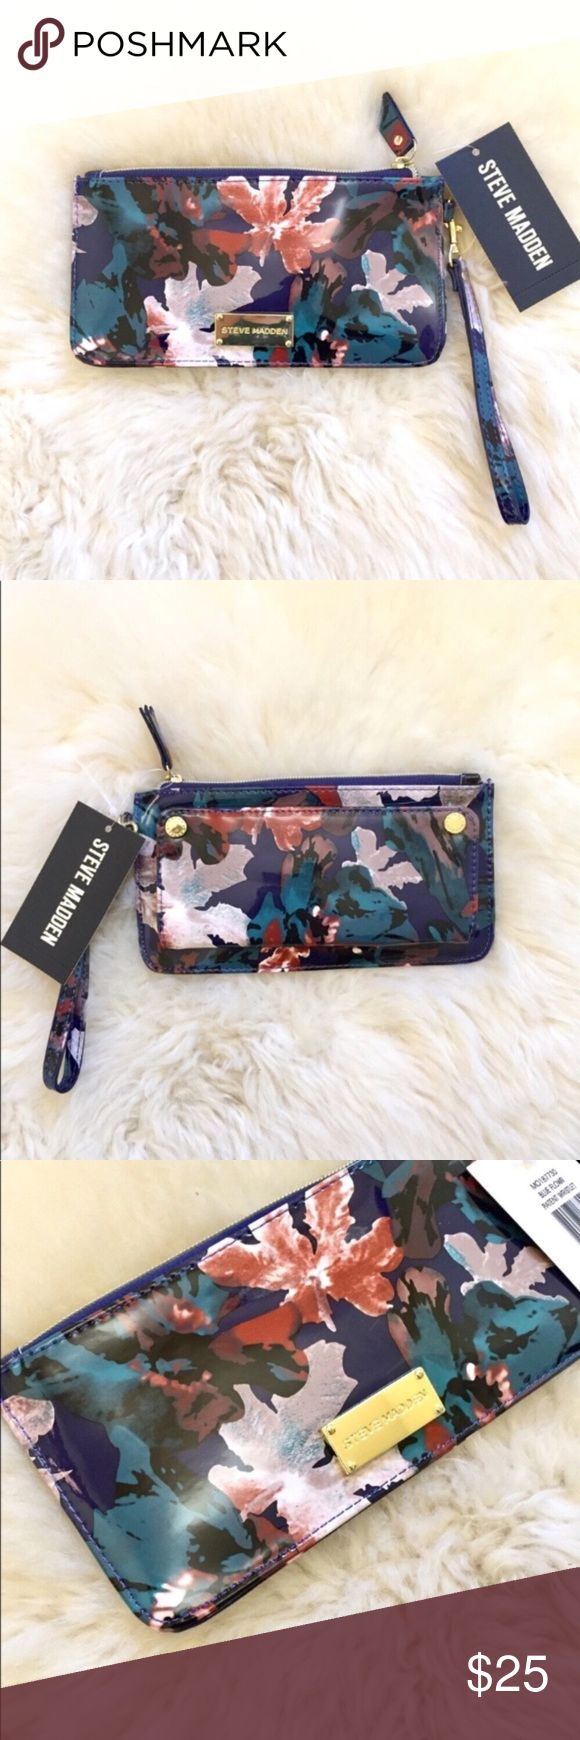 """Steve Madden Textured Floral Wristlet New With Tags- shiny floral wristlet with detachable wrist strap, top zip closure, exterior with front double magnetic flap with bill slot, clear ID slot and 11 card slots, interior with 4 card slots. Height 4 3/8, Width 8 1/4, Wrist Strap Length 7"""". PVC Exterior, Polyester Lining. Steve Madden Bags Clutches & Wristlets"""